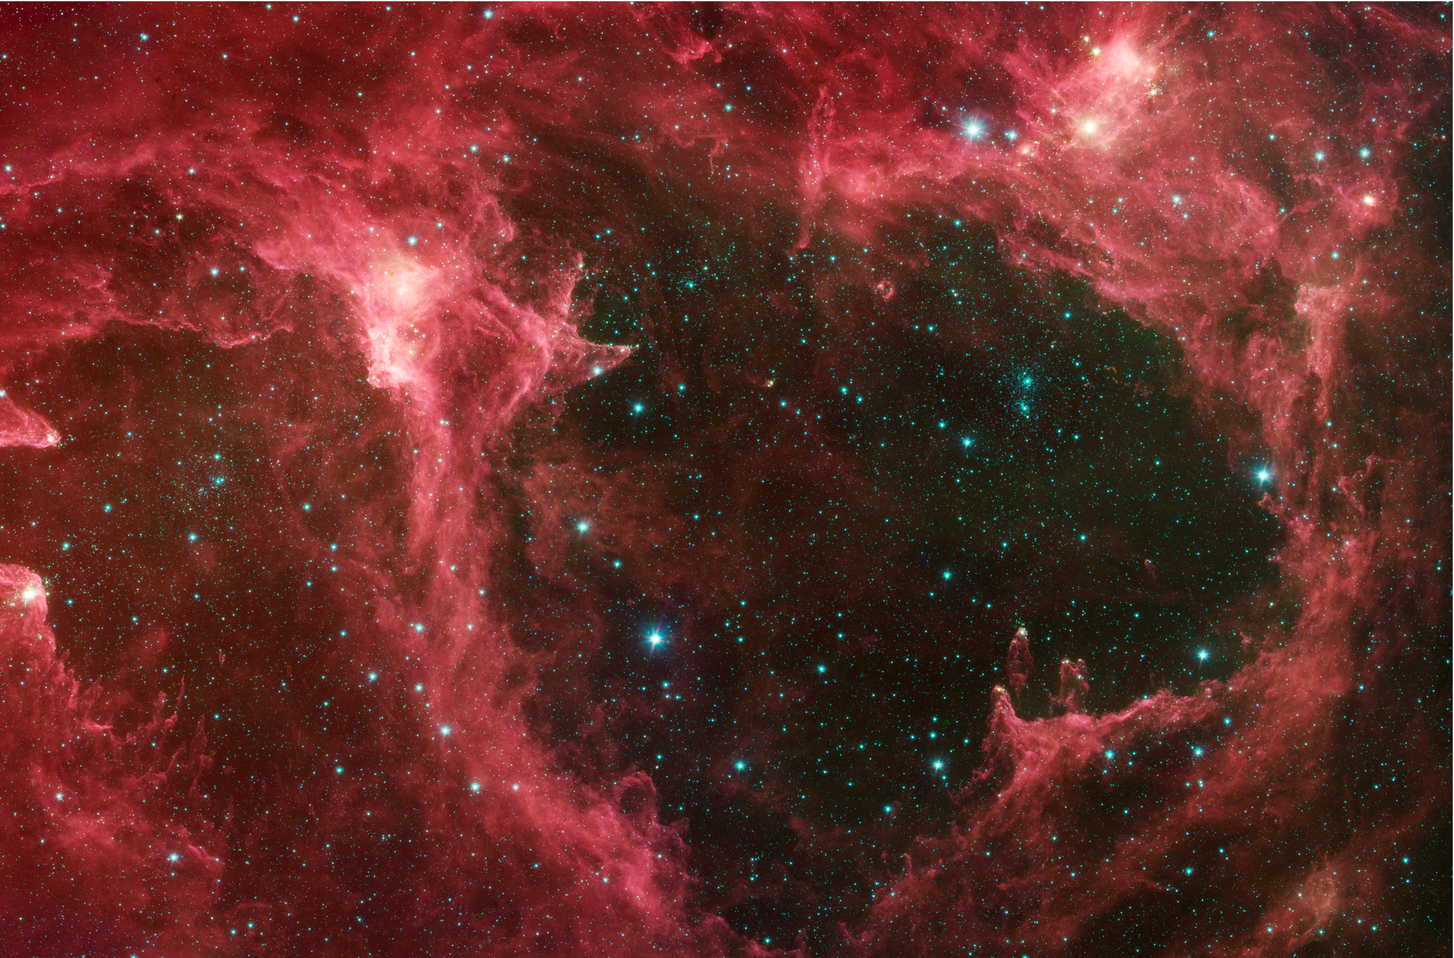 W5 Star Forming Region (Spitzer Space Telescope - NASA/JPL)